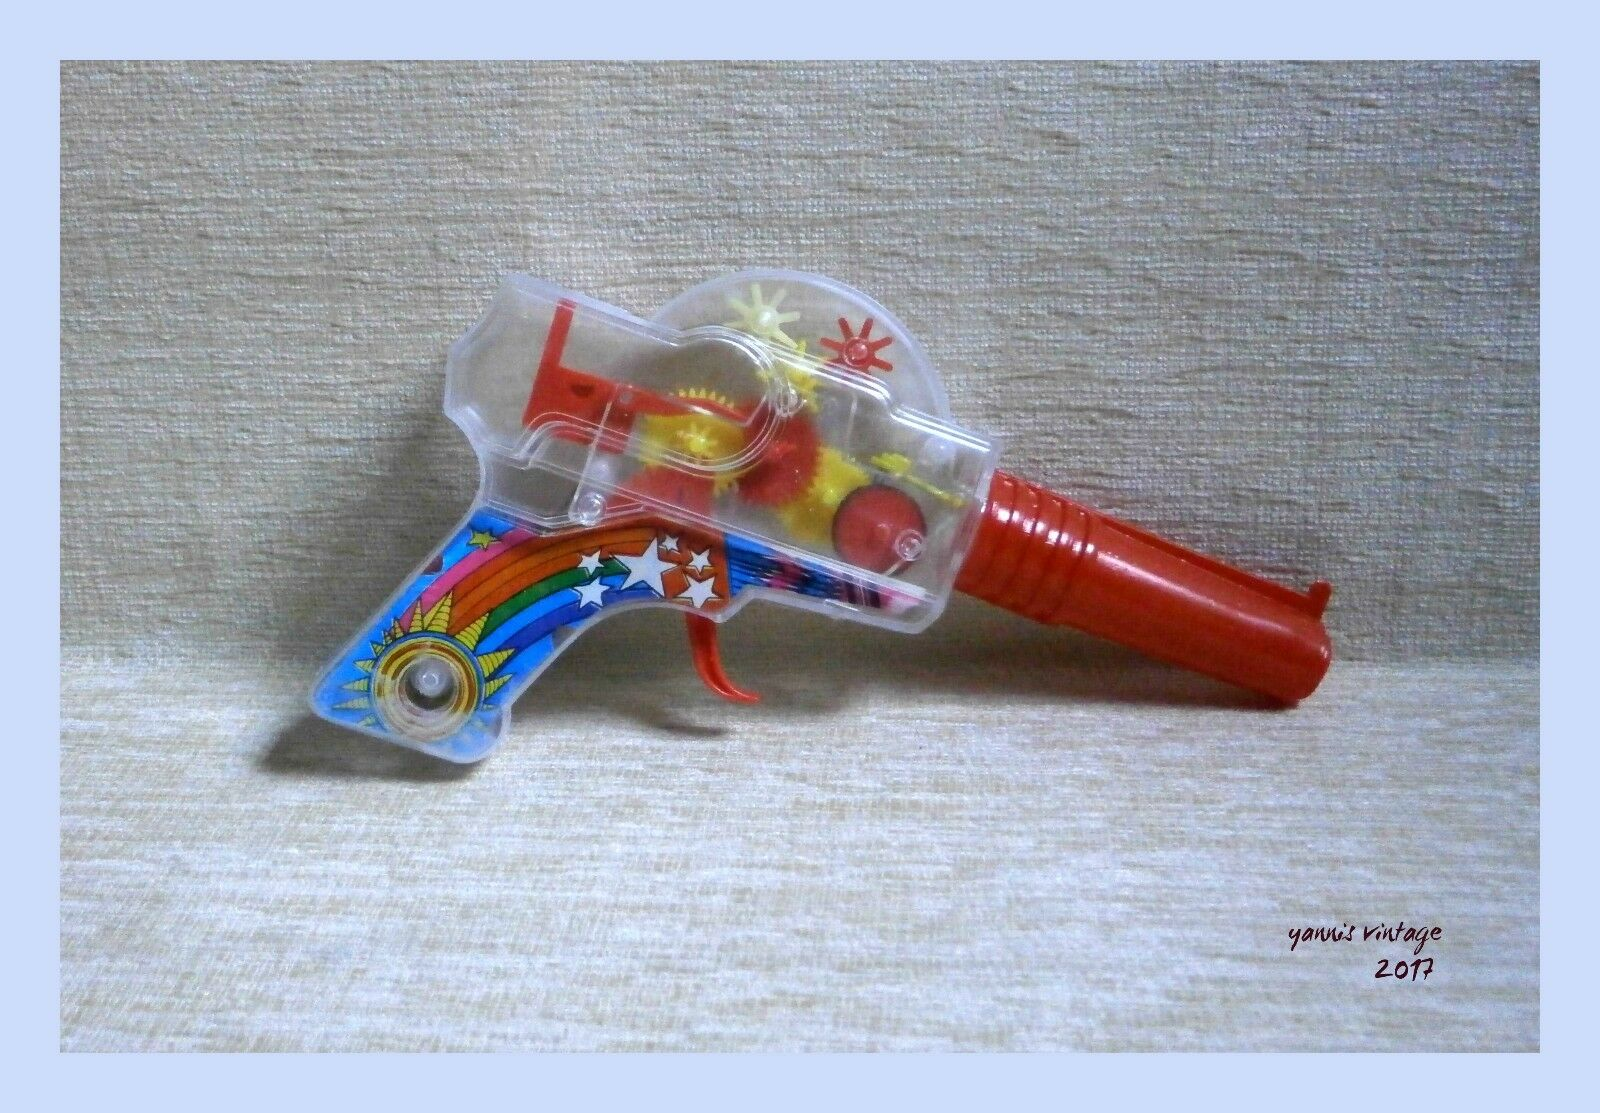 Transparent SPACE GUN FRICTION SPARKING NEW NO BOX PLASTIC UNIQUE MADE IN GREECE